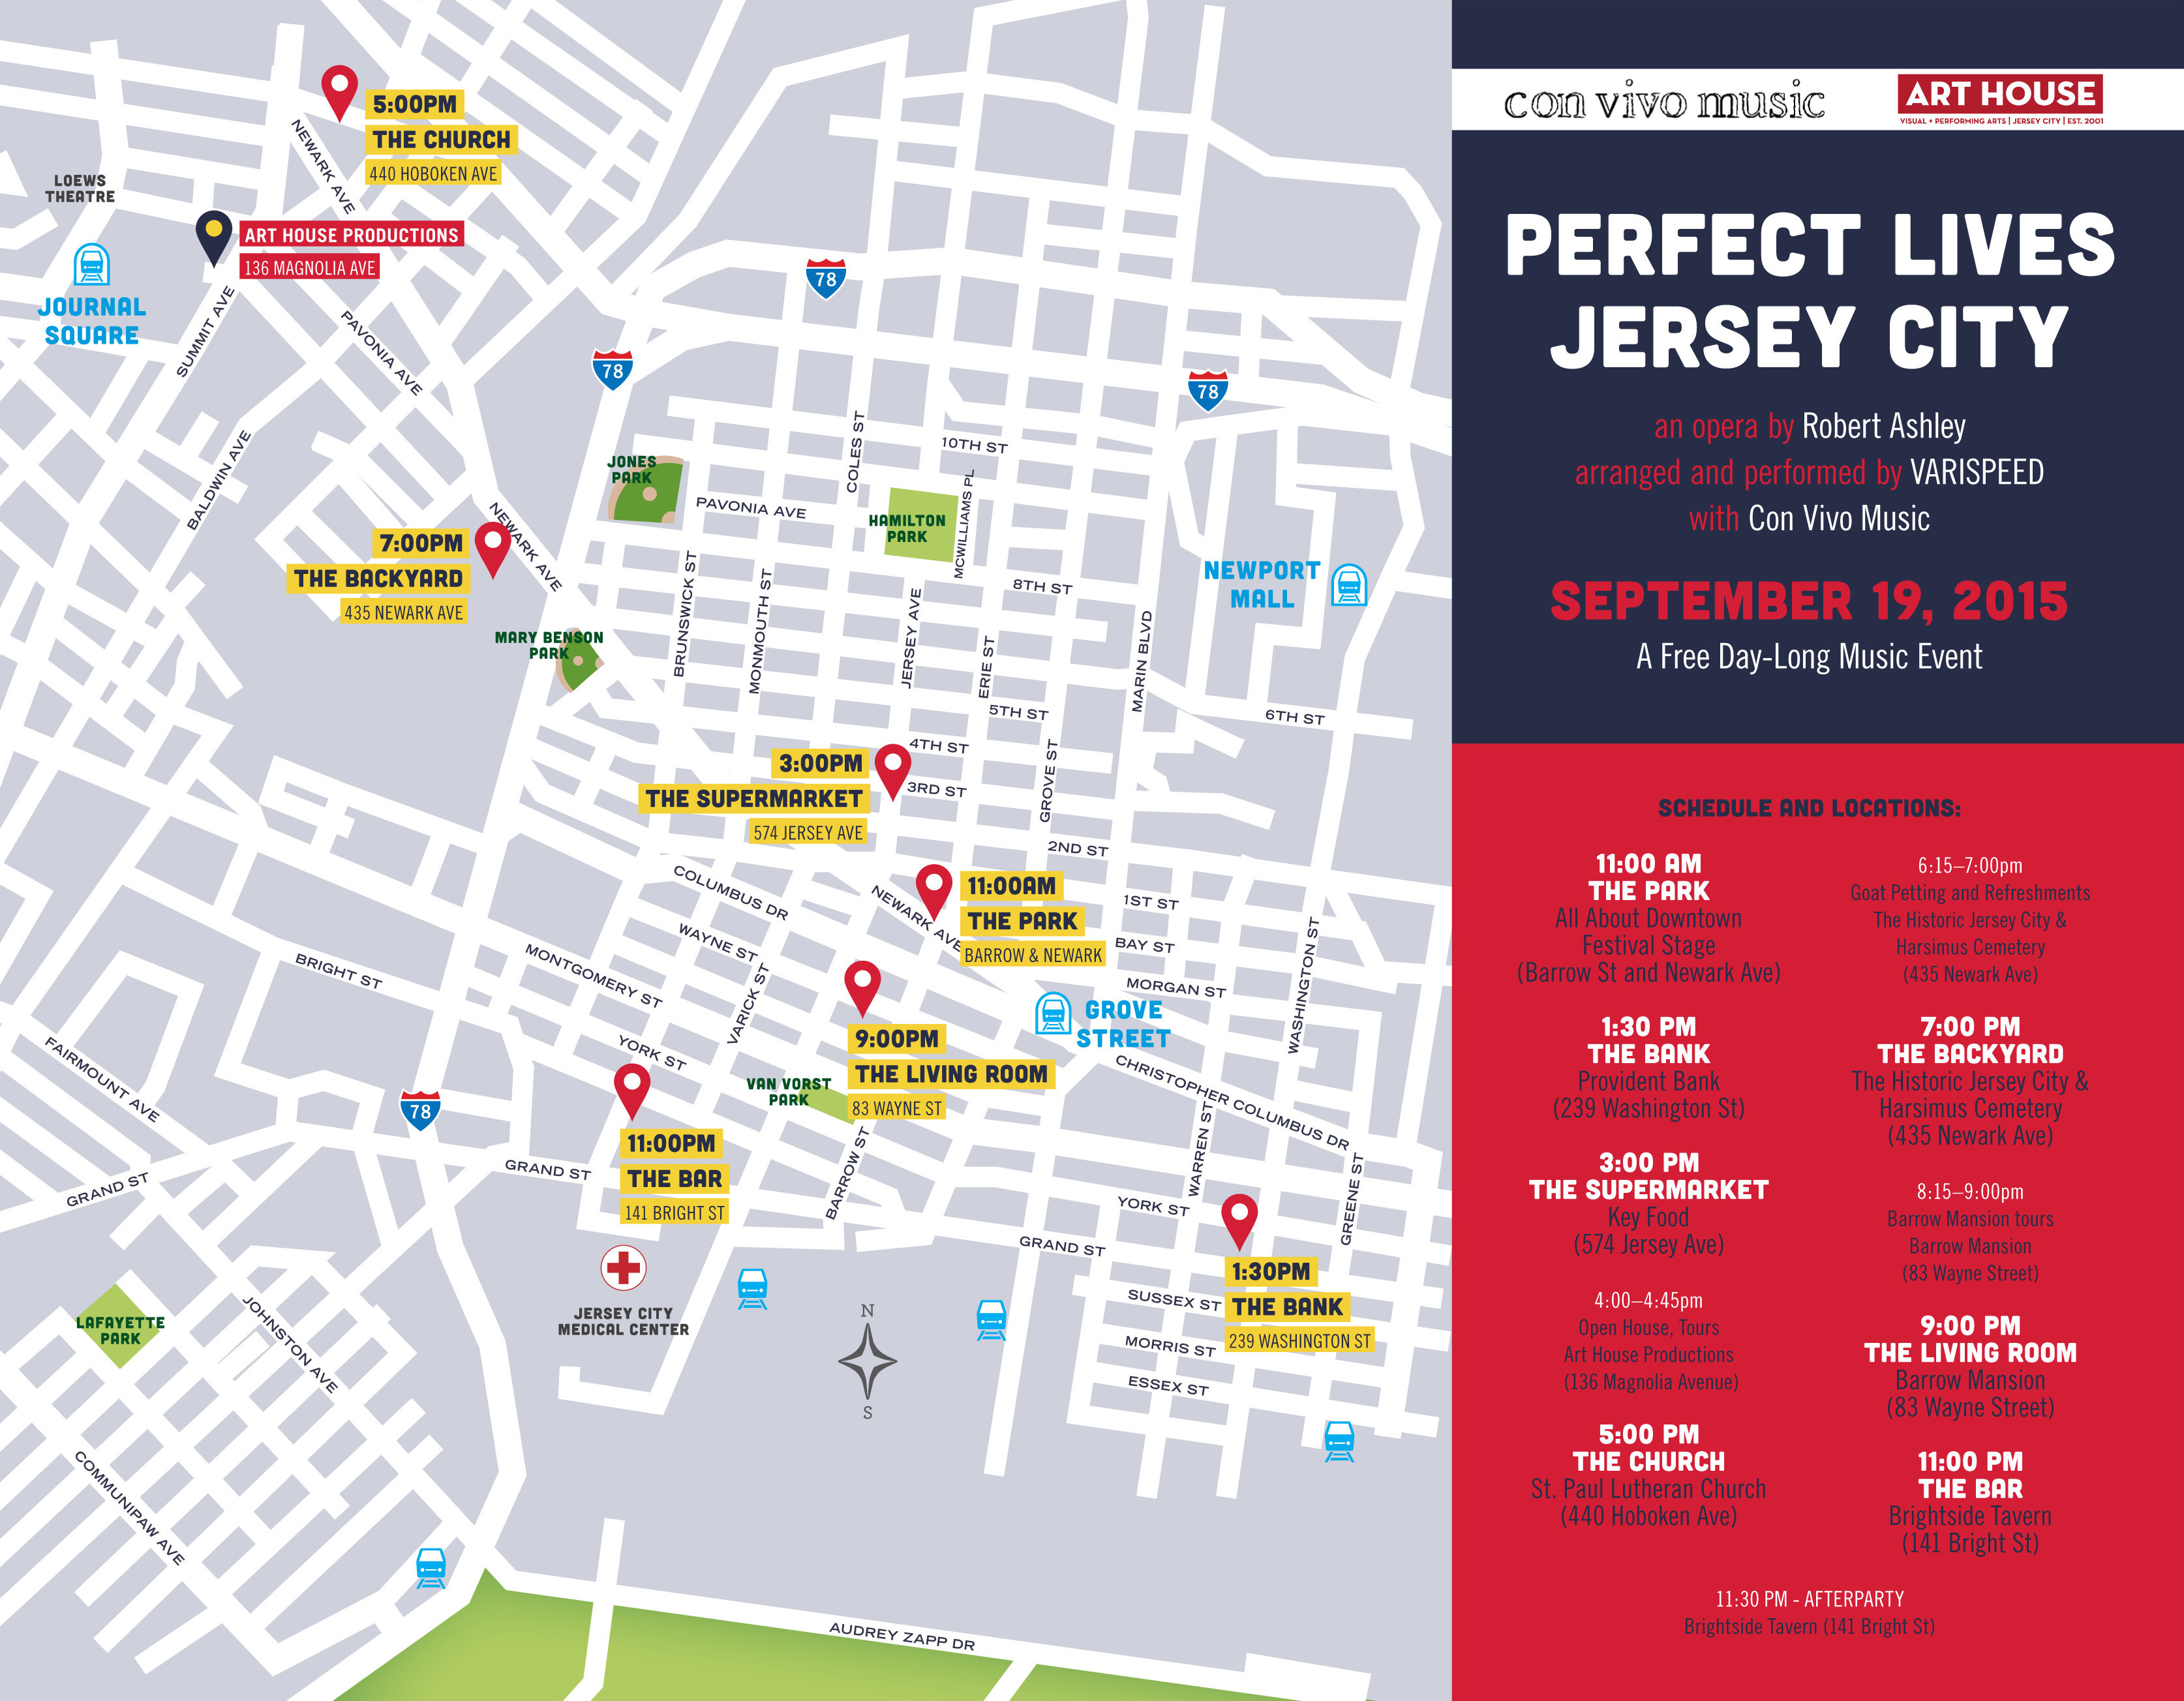 Perfect Lives Jersey City - Map of jersey city